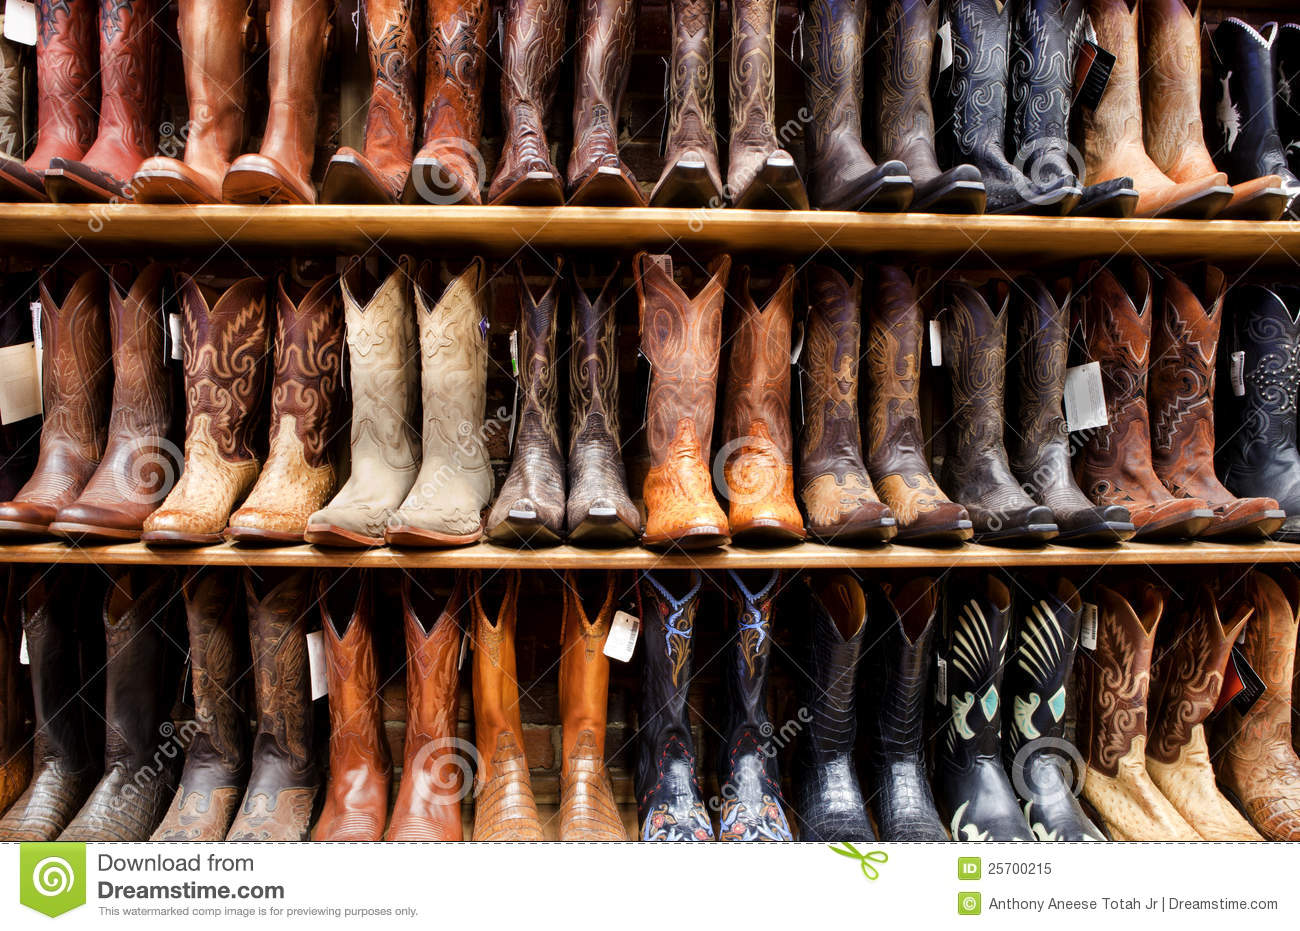 575c14c62e3 Country Western Apparel Near Me | Toffee Art